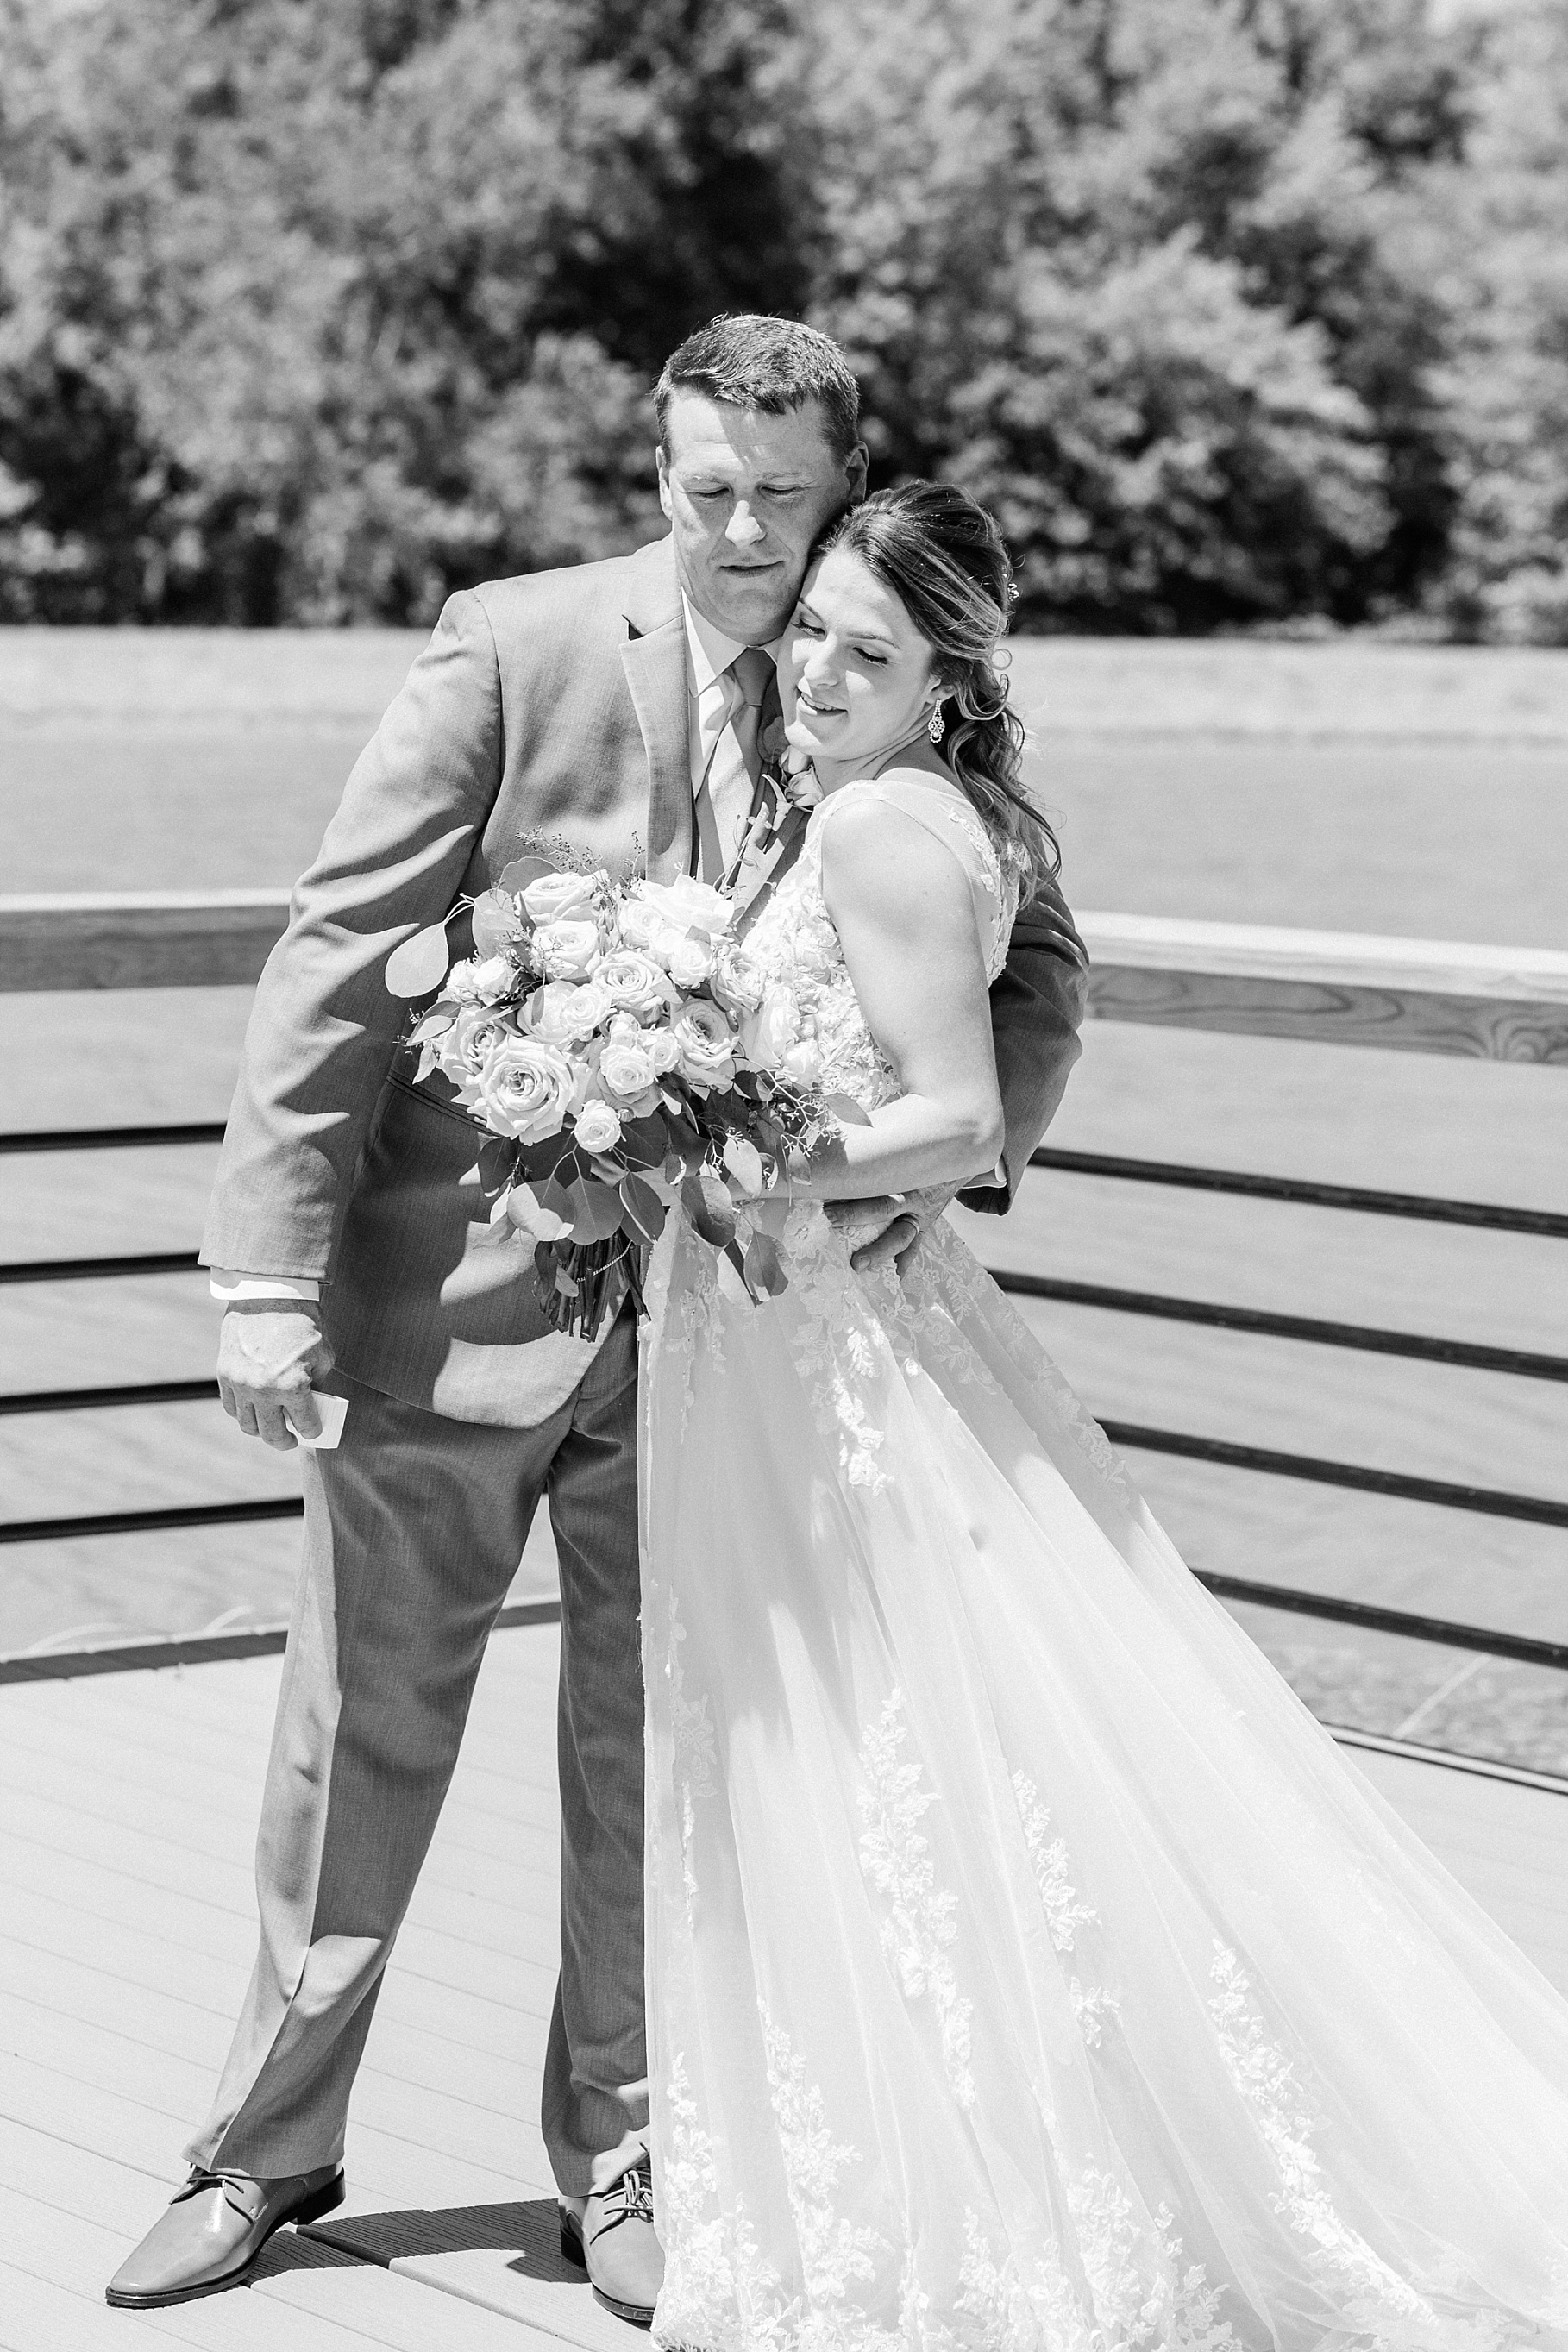 Classic Quartz, White, and Deep Green Wedding at Emerson Fields by Kelsi Kliethermes Photography Best Columbia Missouri and Maui Hawaii Wedding Photographer_0041.jpg